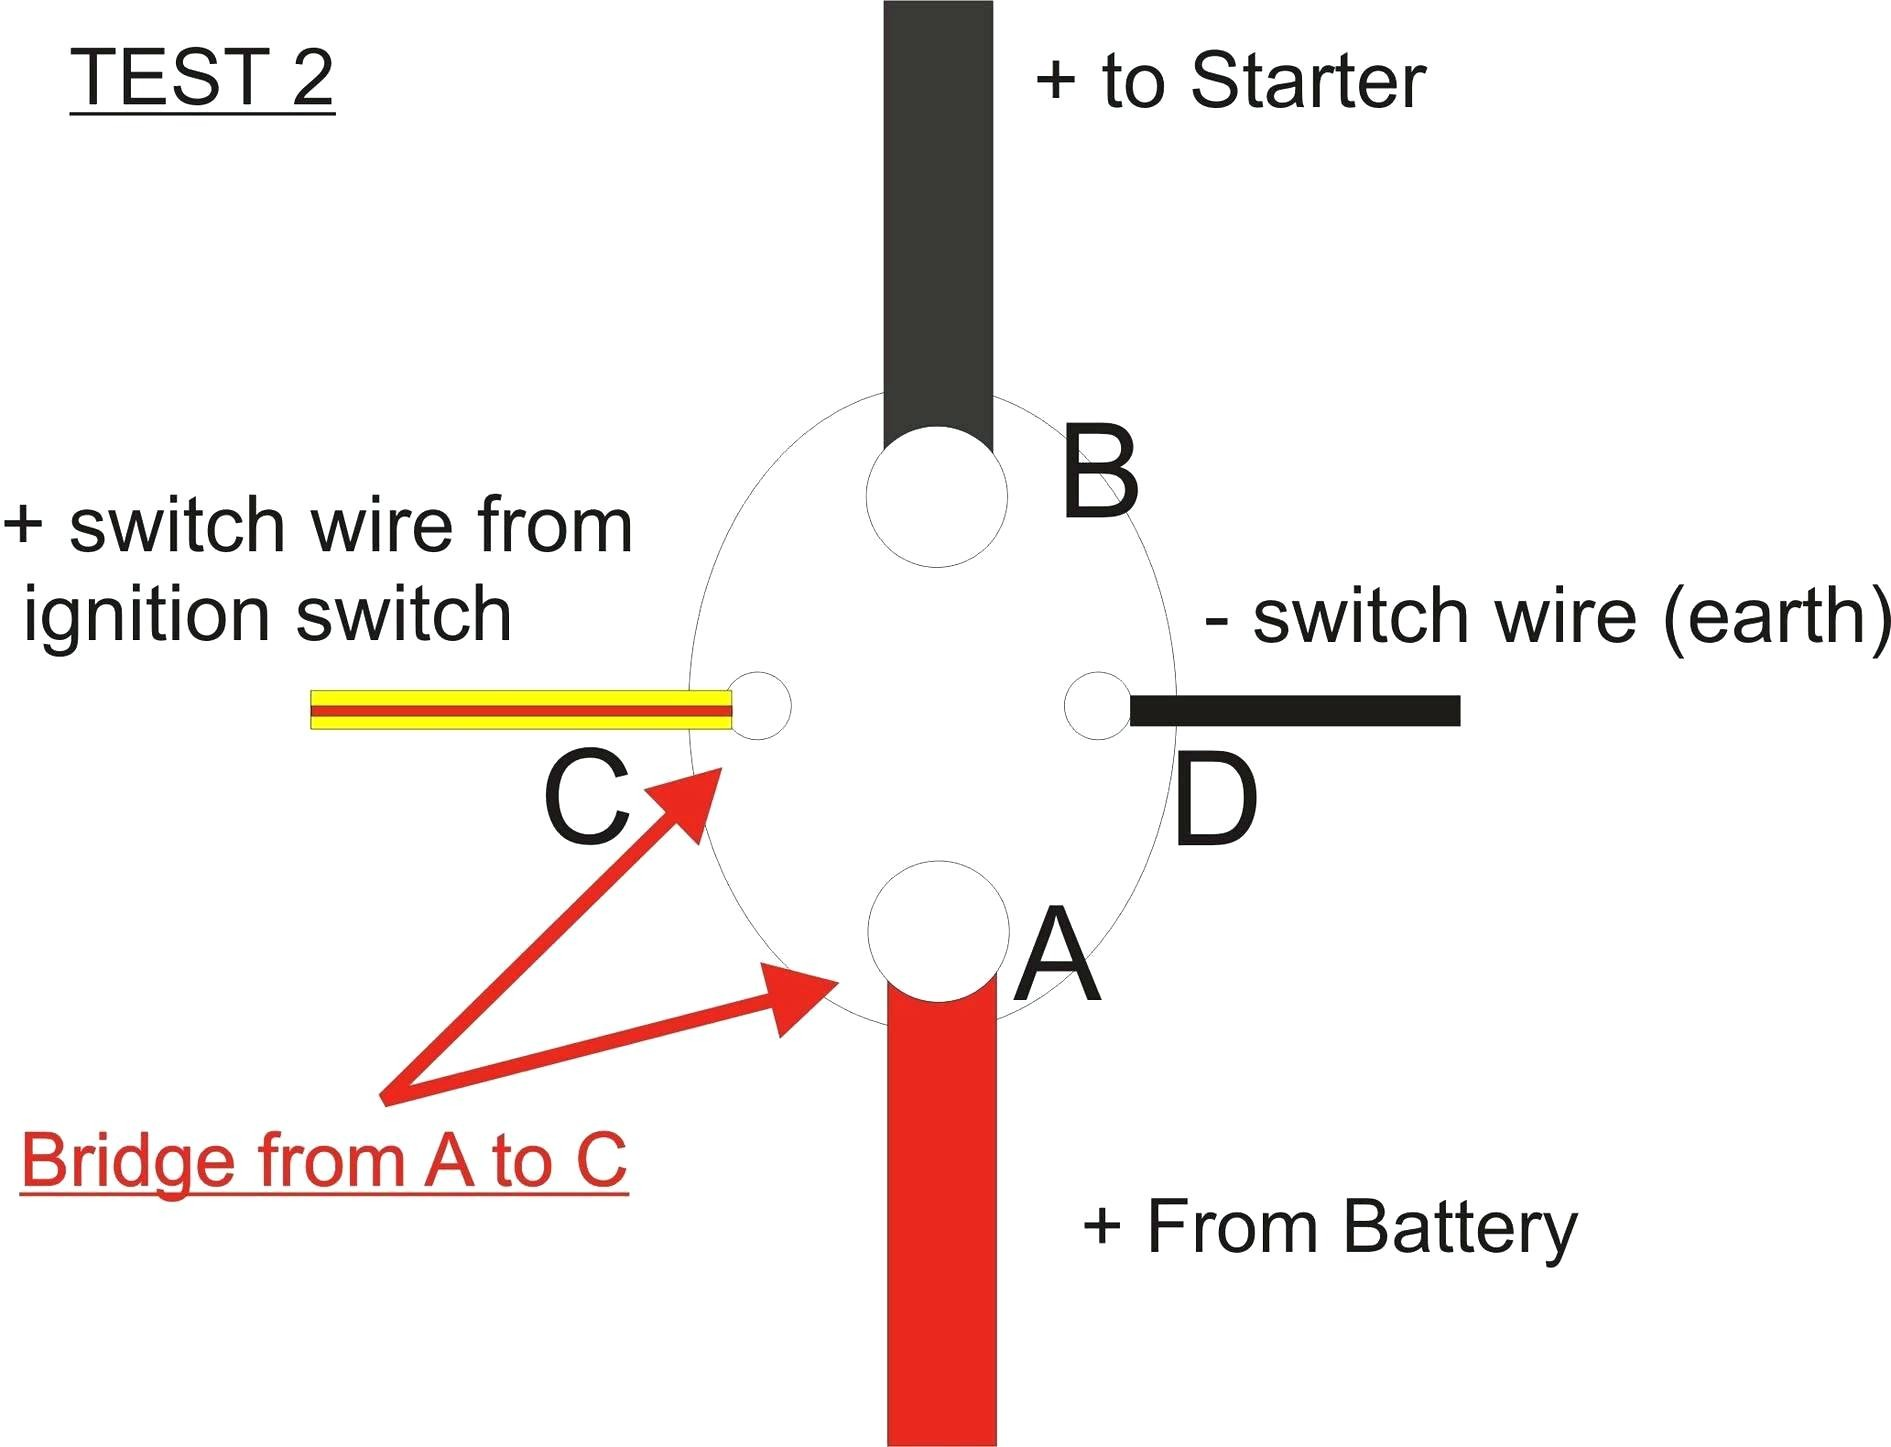 Horn Wiring Diagram Free Download Within Wolo Discrd Me Dixie Horn Wiring Diagram Diagrams Wolo Train Kits For Trucks Air Throughout At Wiring Diagram For